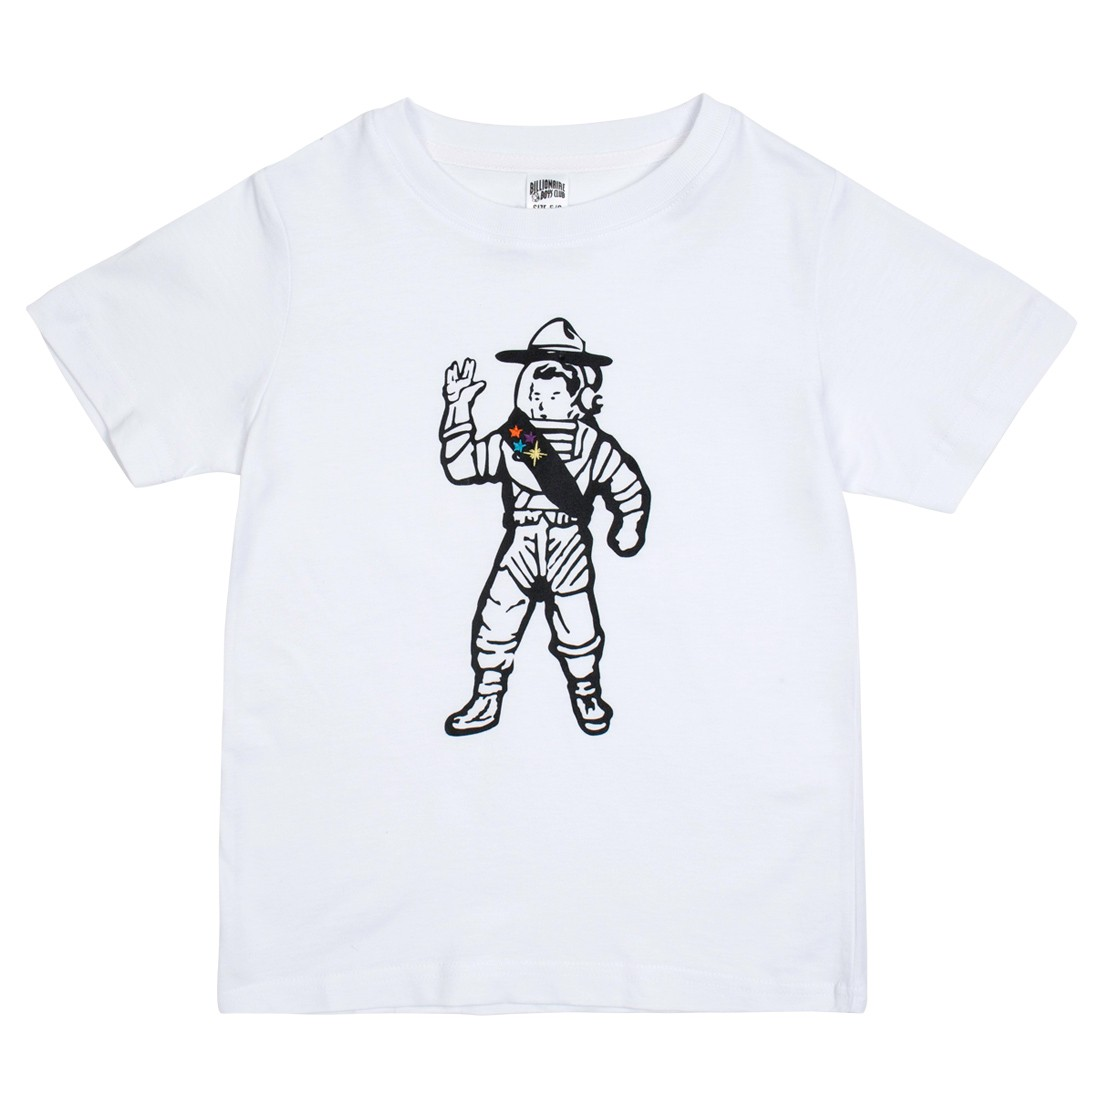 Billionaire Boys Club Little Kids First Class Tee (white)